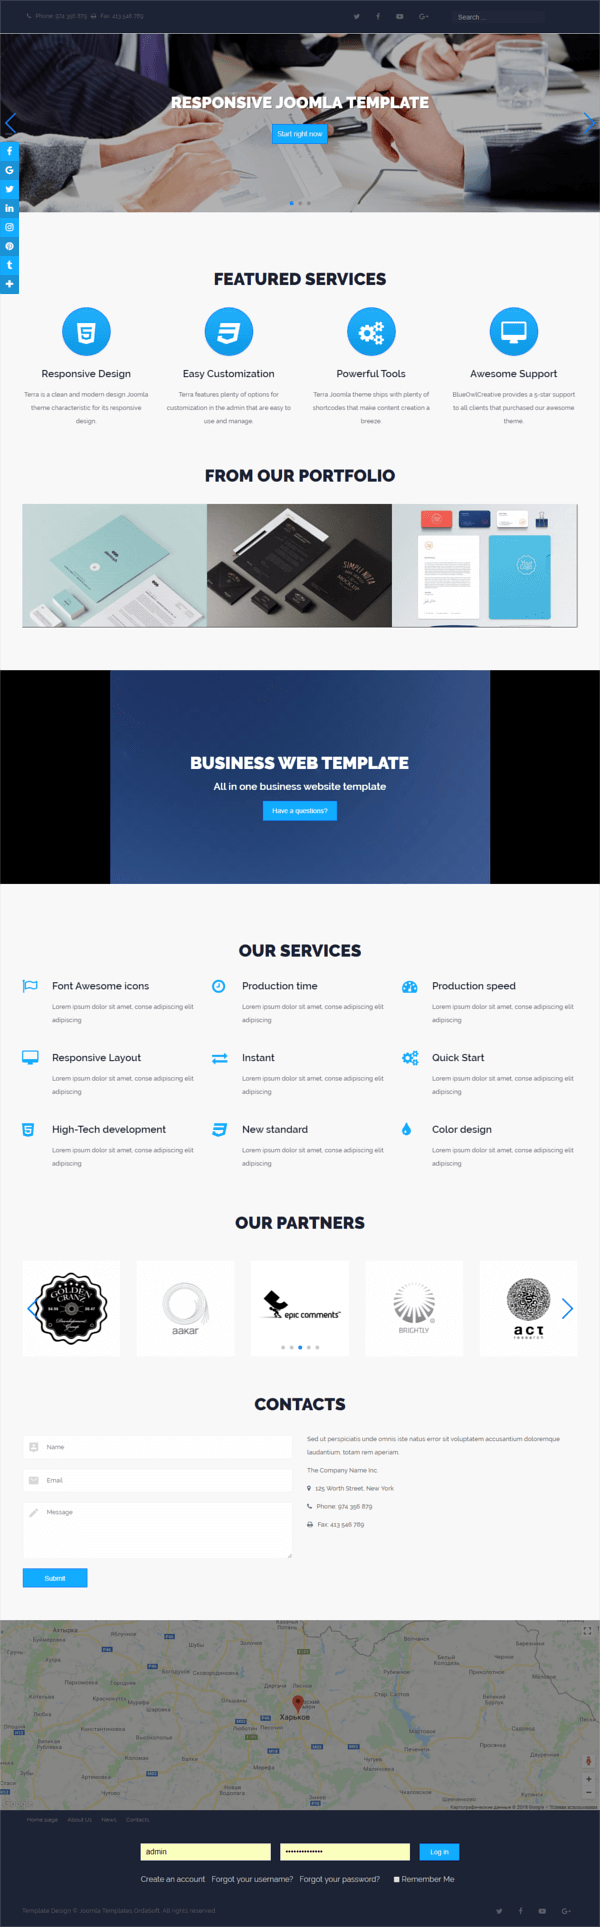 Rapture, Joomla business template for create business website, full screen